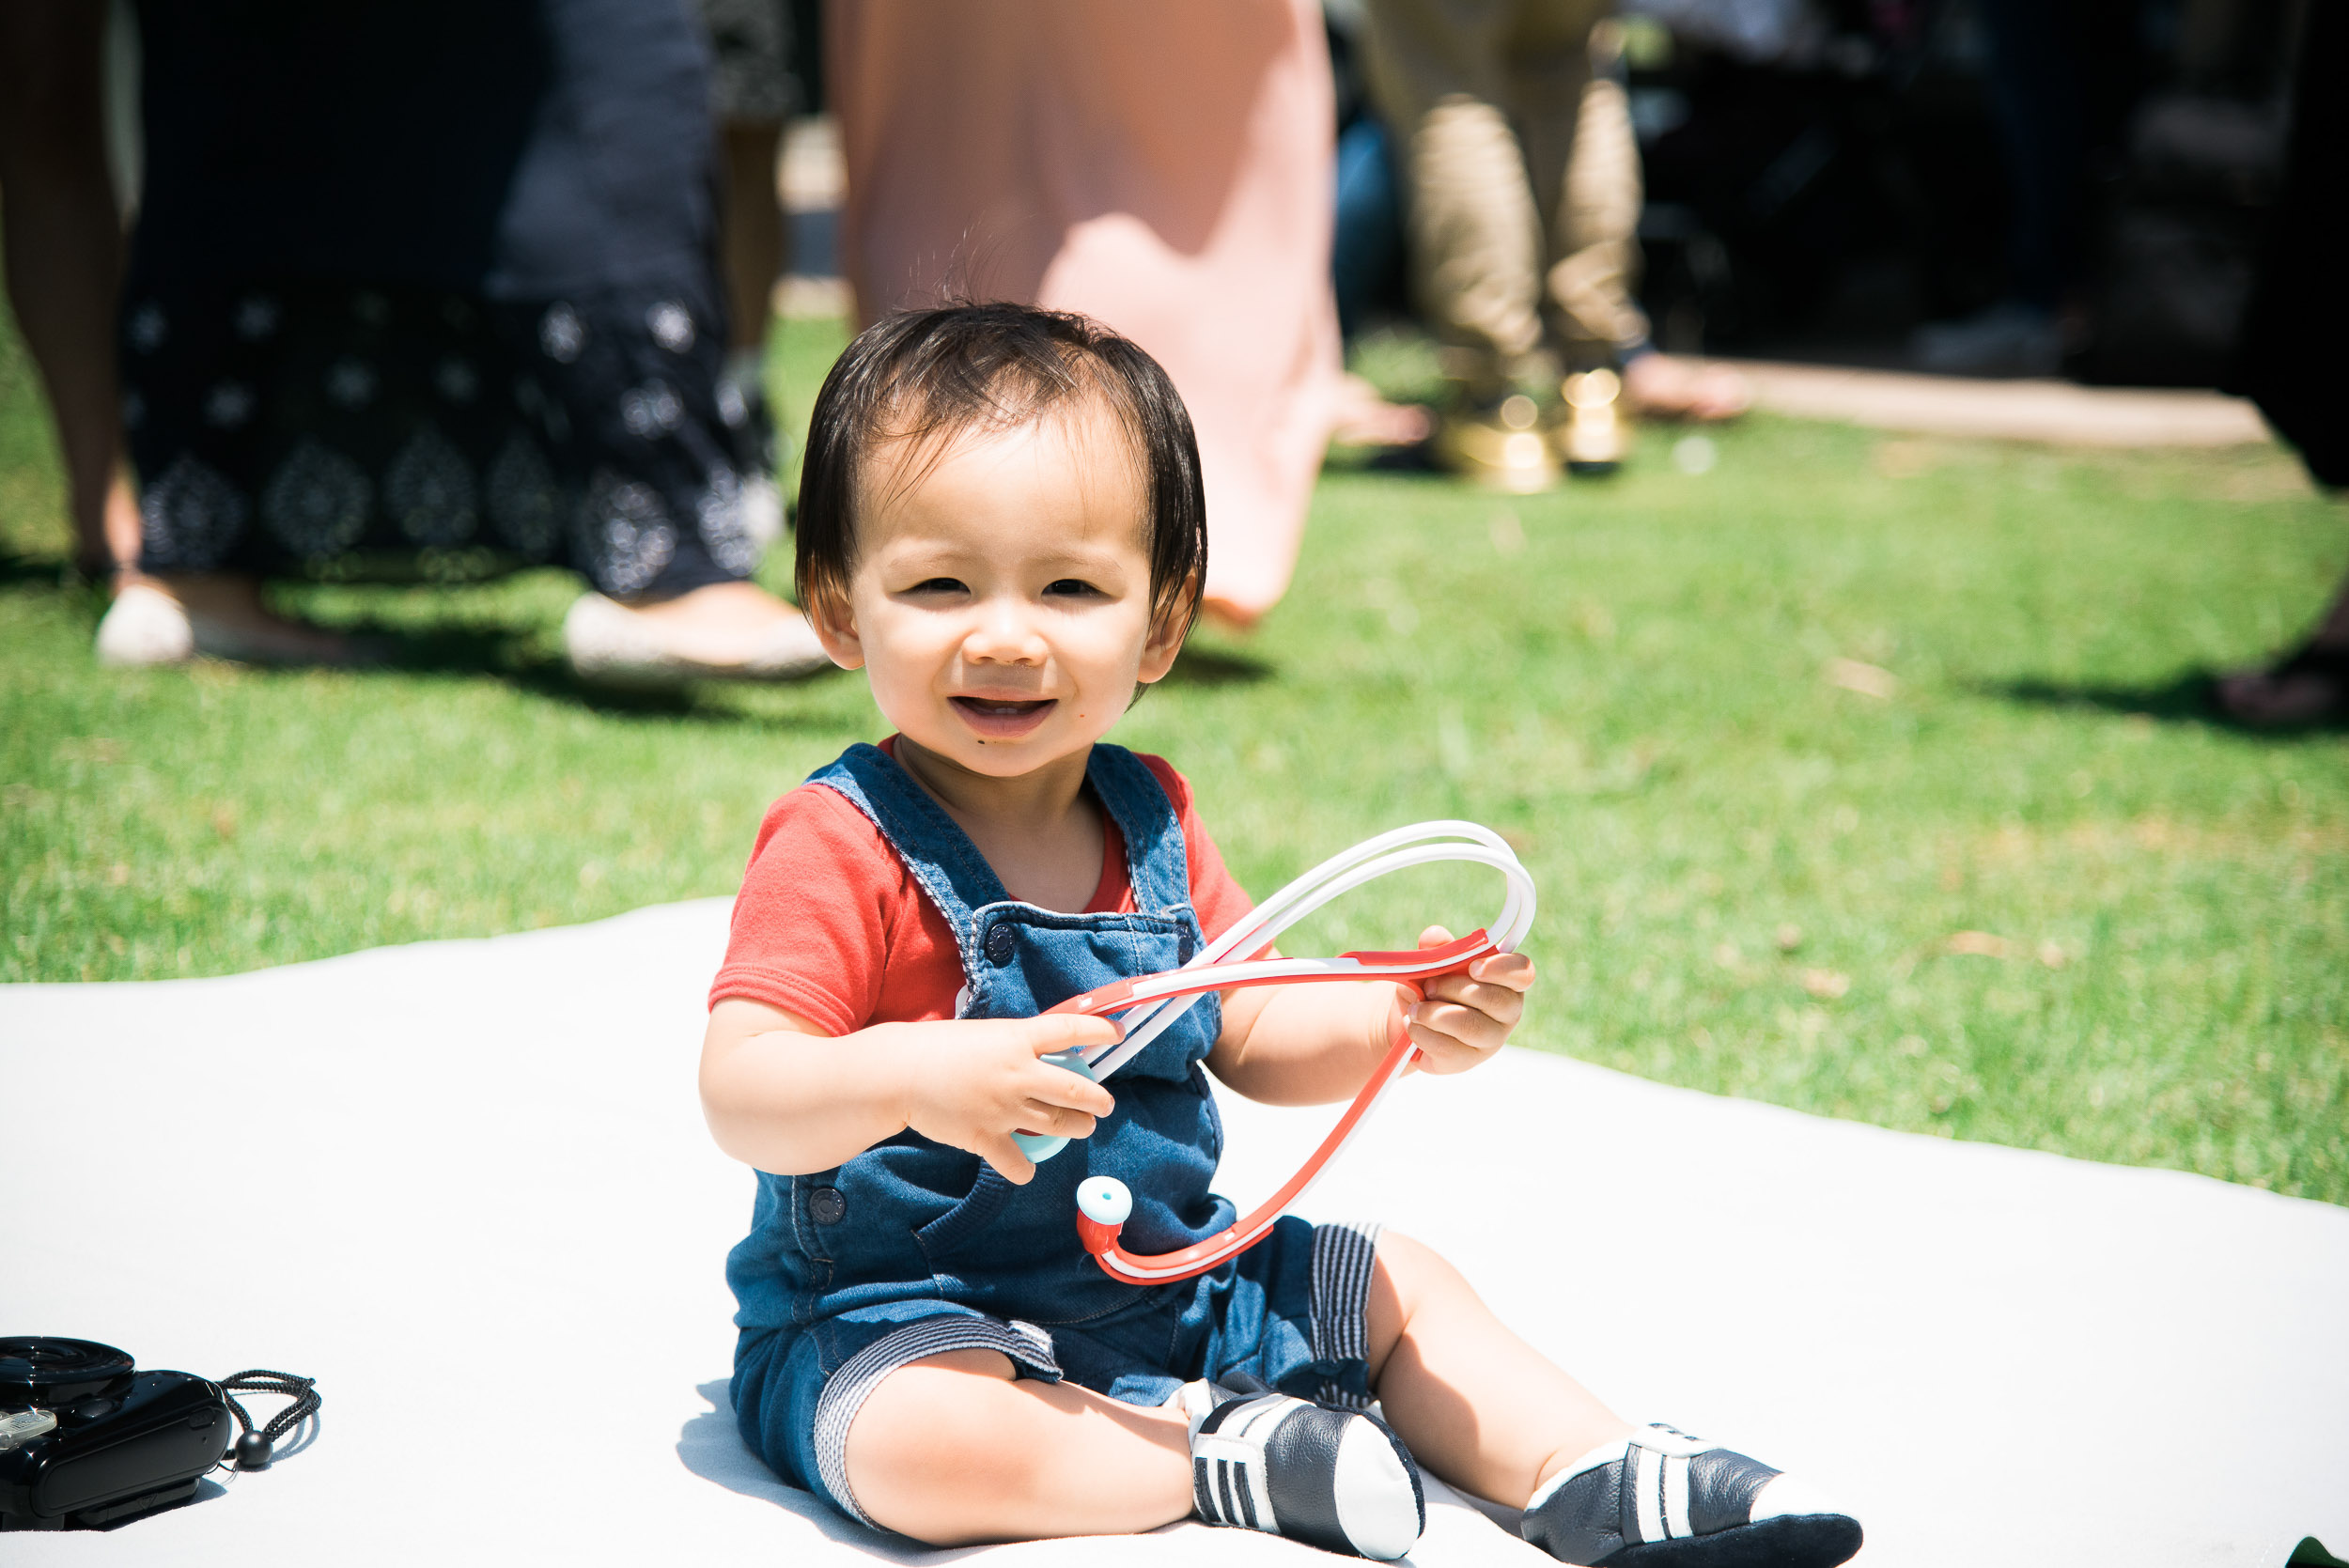 Bryan-Miraflor-Photography-Davin-First-Birthday-Irvine-20170603-0148.jpg